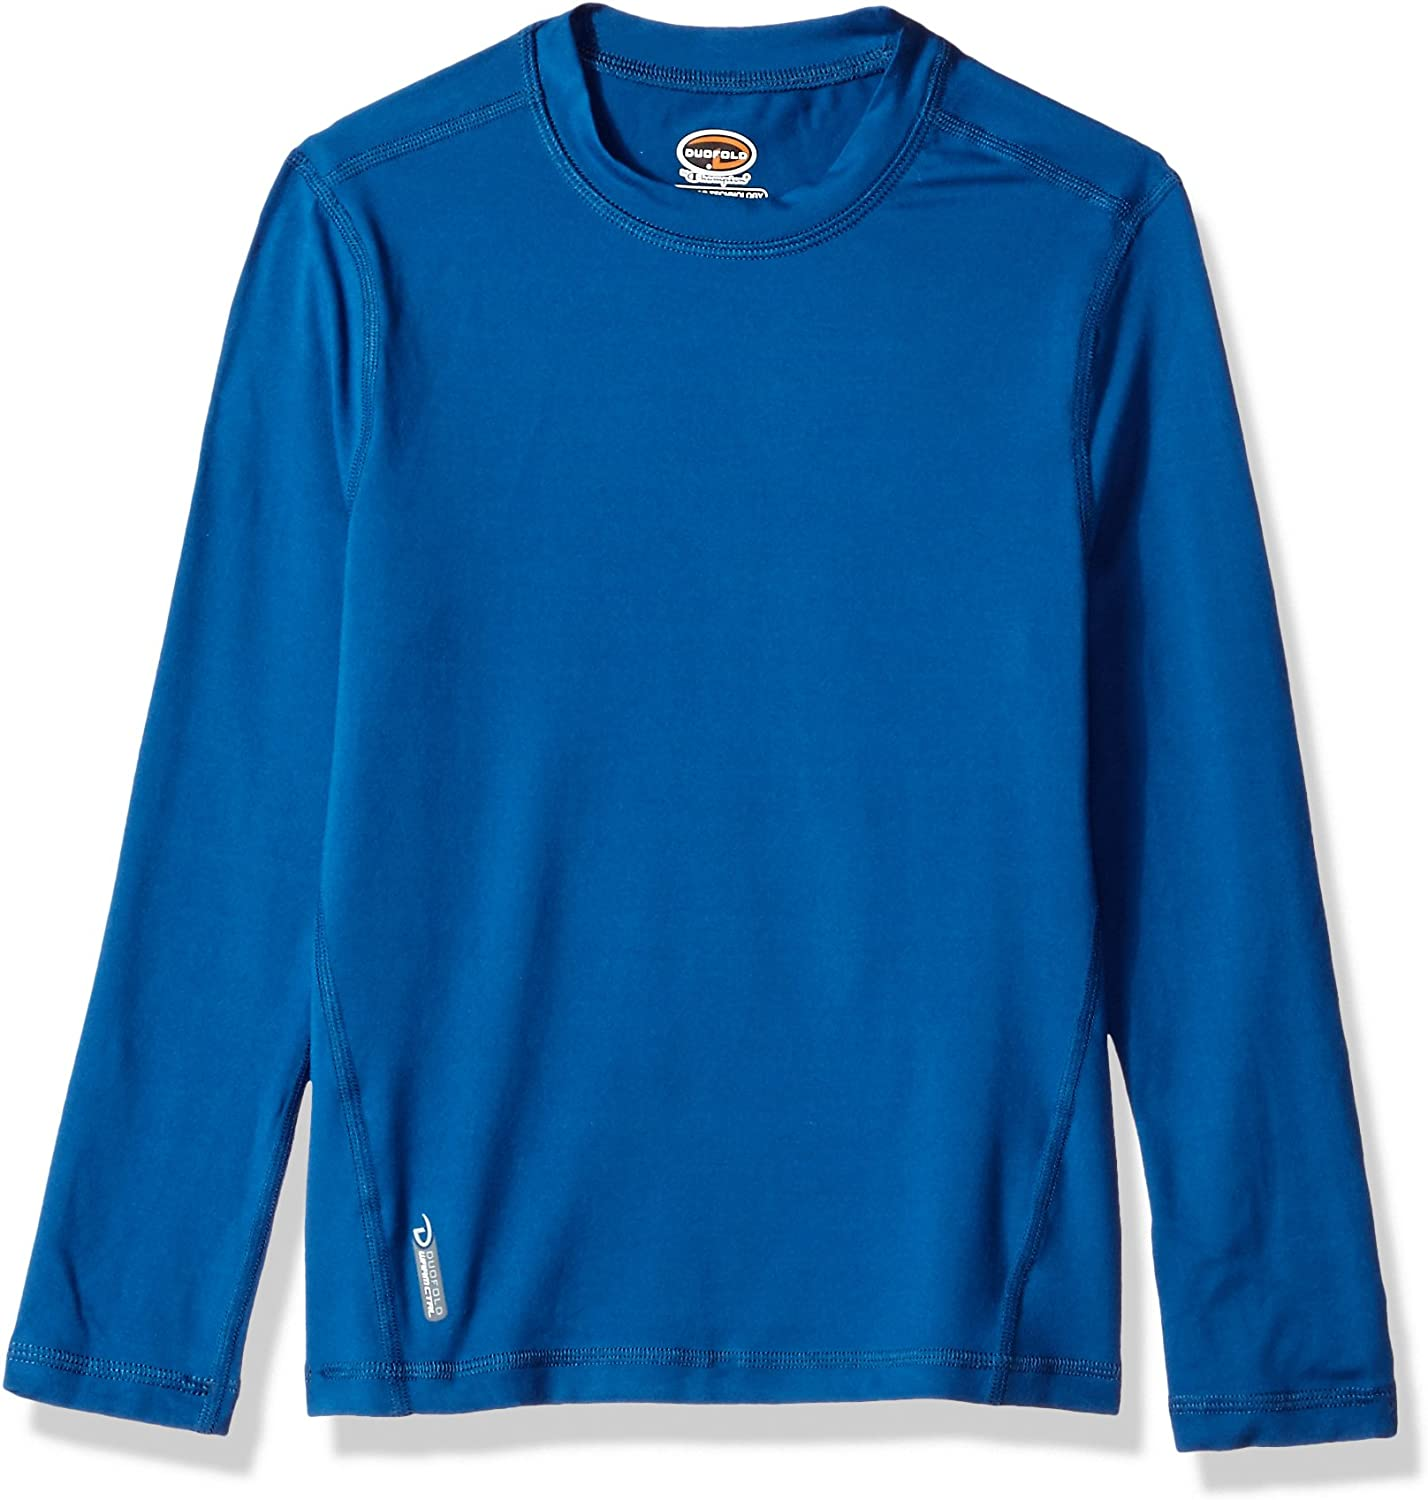 Duofold Boys' Big Flex Weight Thermal Shirt